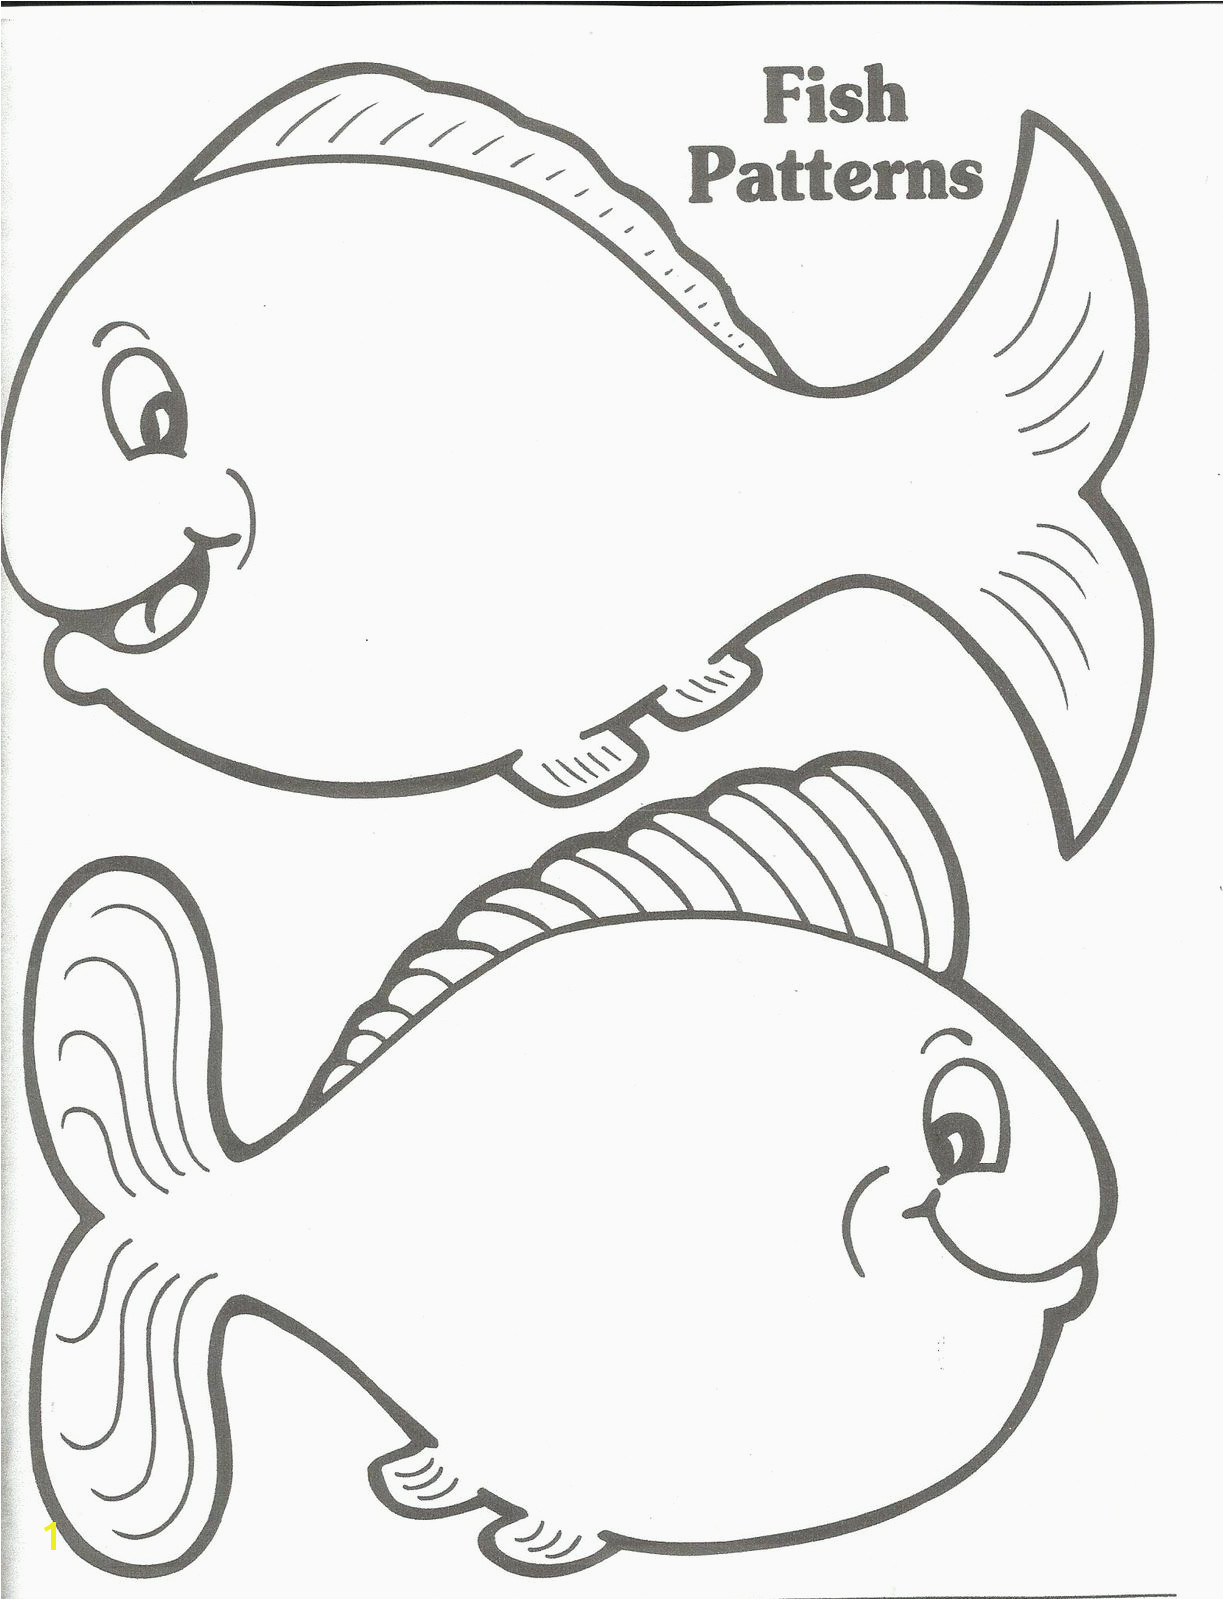 Alligator Gar Coloring Page Alligator Gar Coloring Page Coloring Pages Coloring Pages